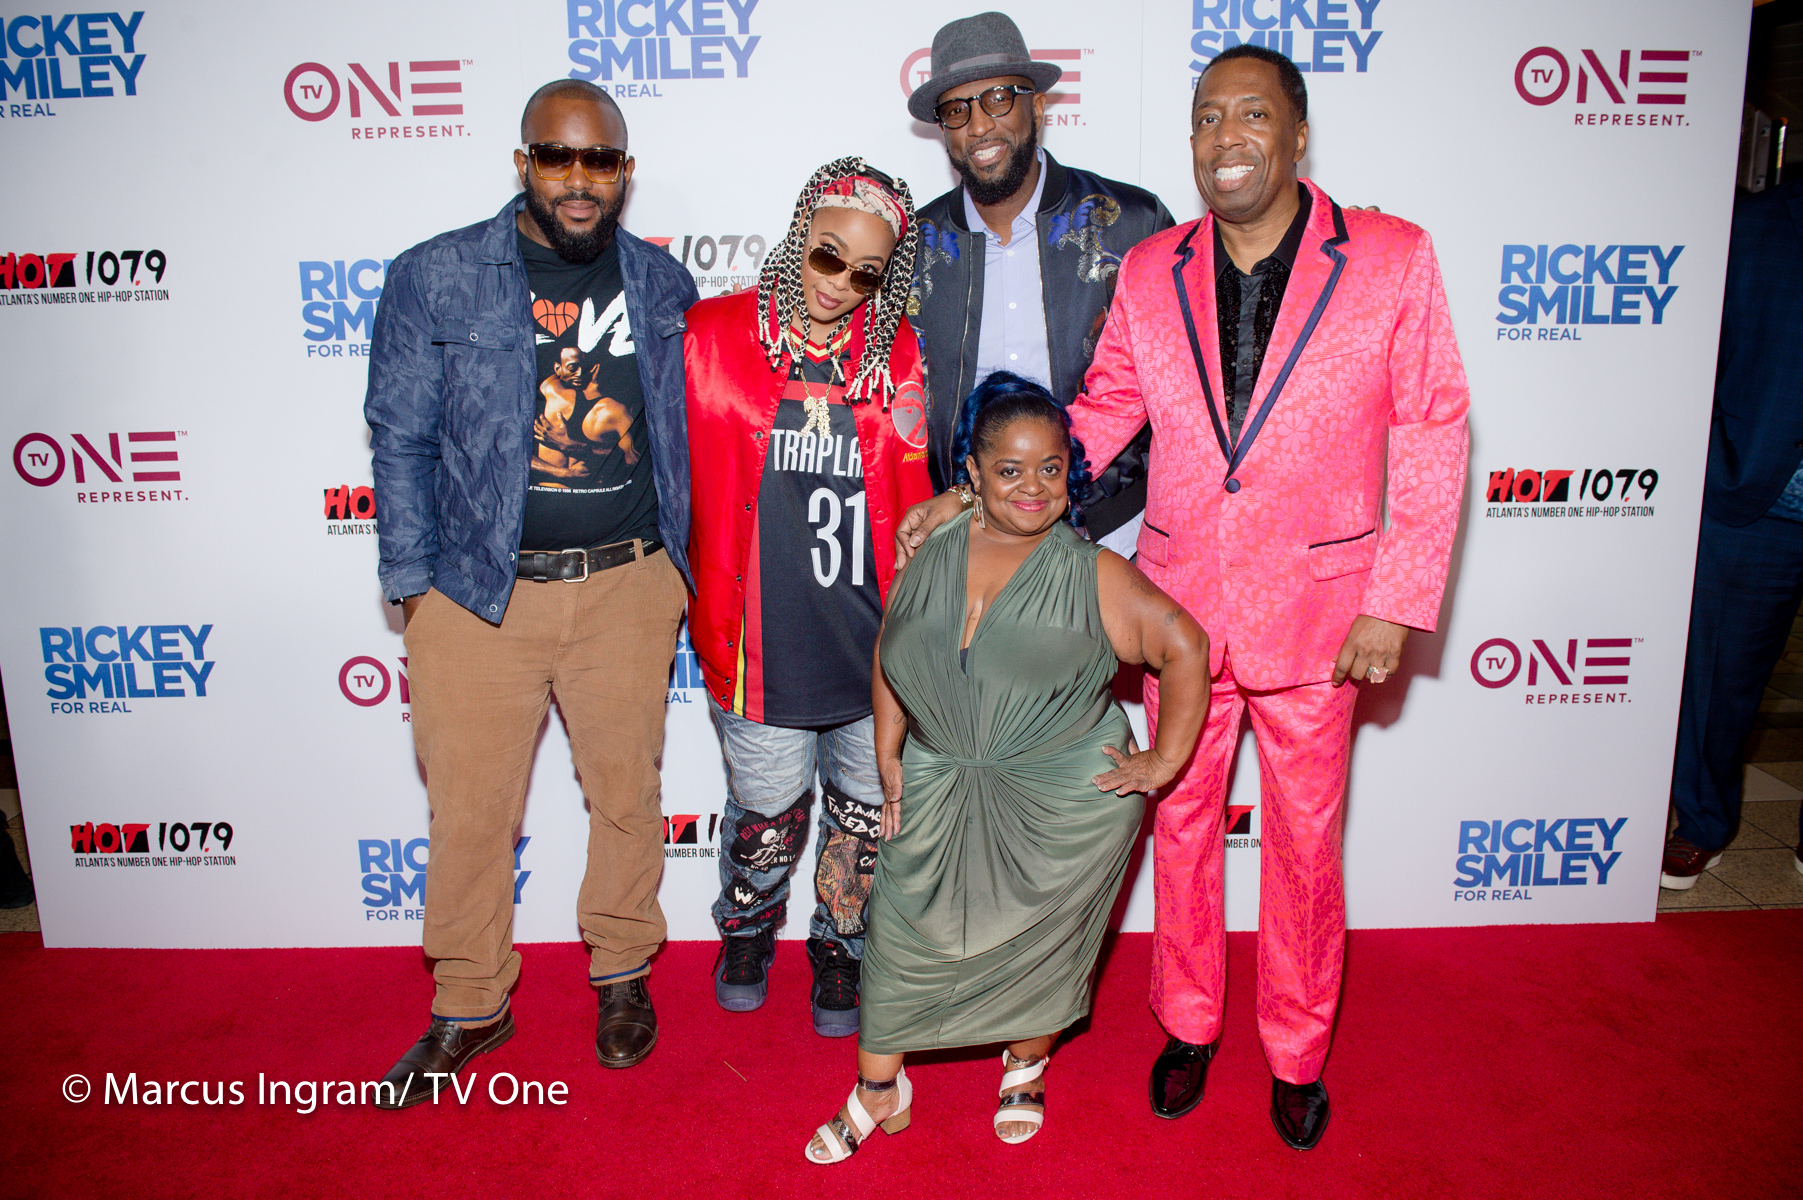 """VIP's Gather For Atlanta Premiere Of Season 5 Of Tv One TV One's """"Rickey Smiley For Real"""